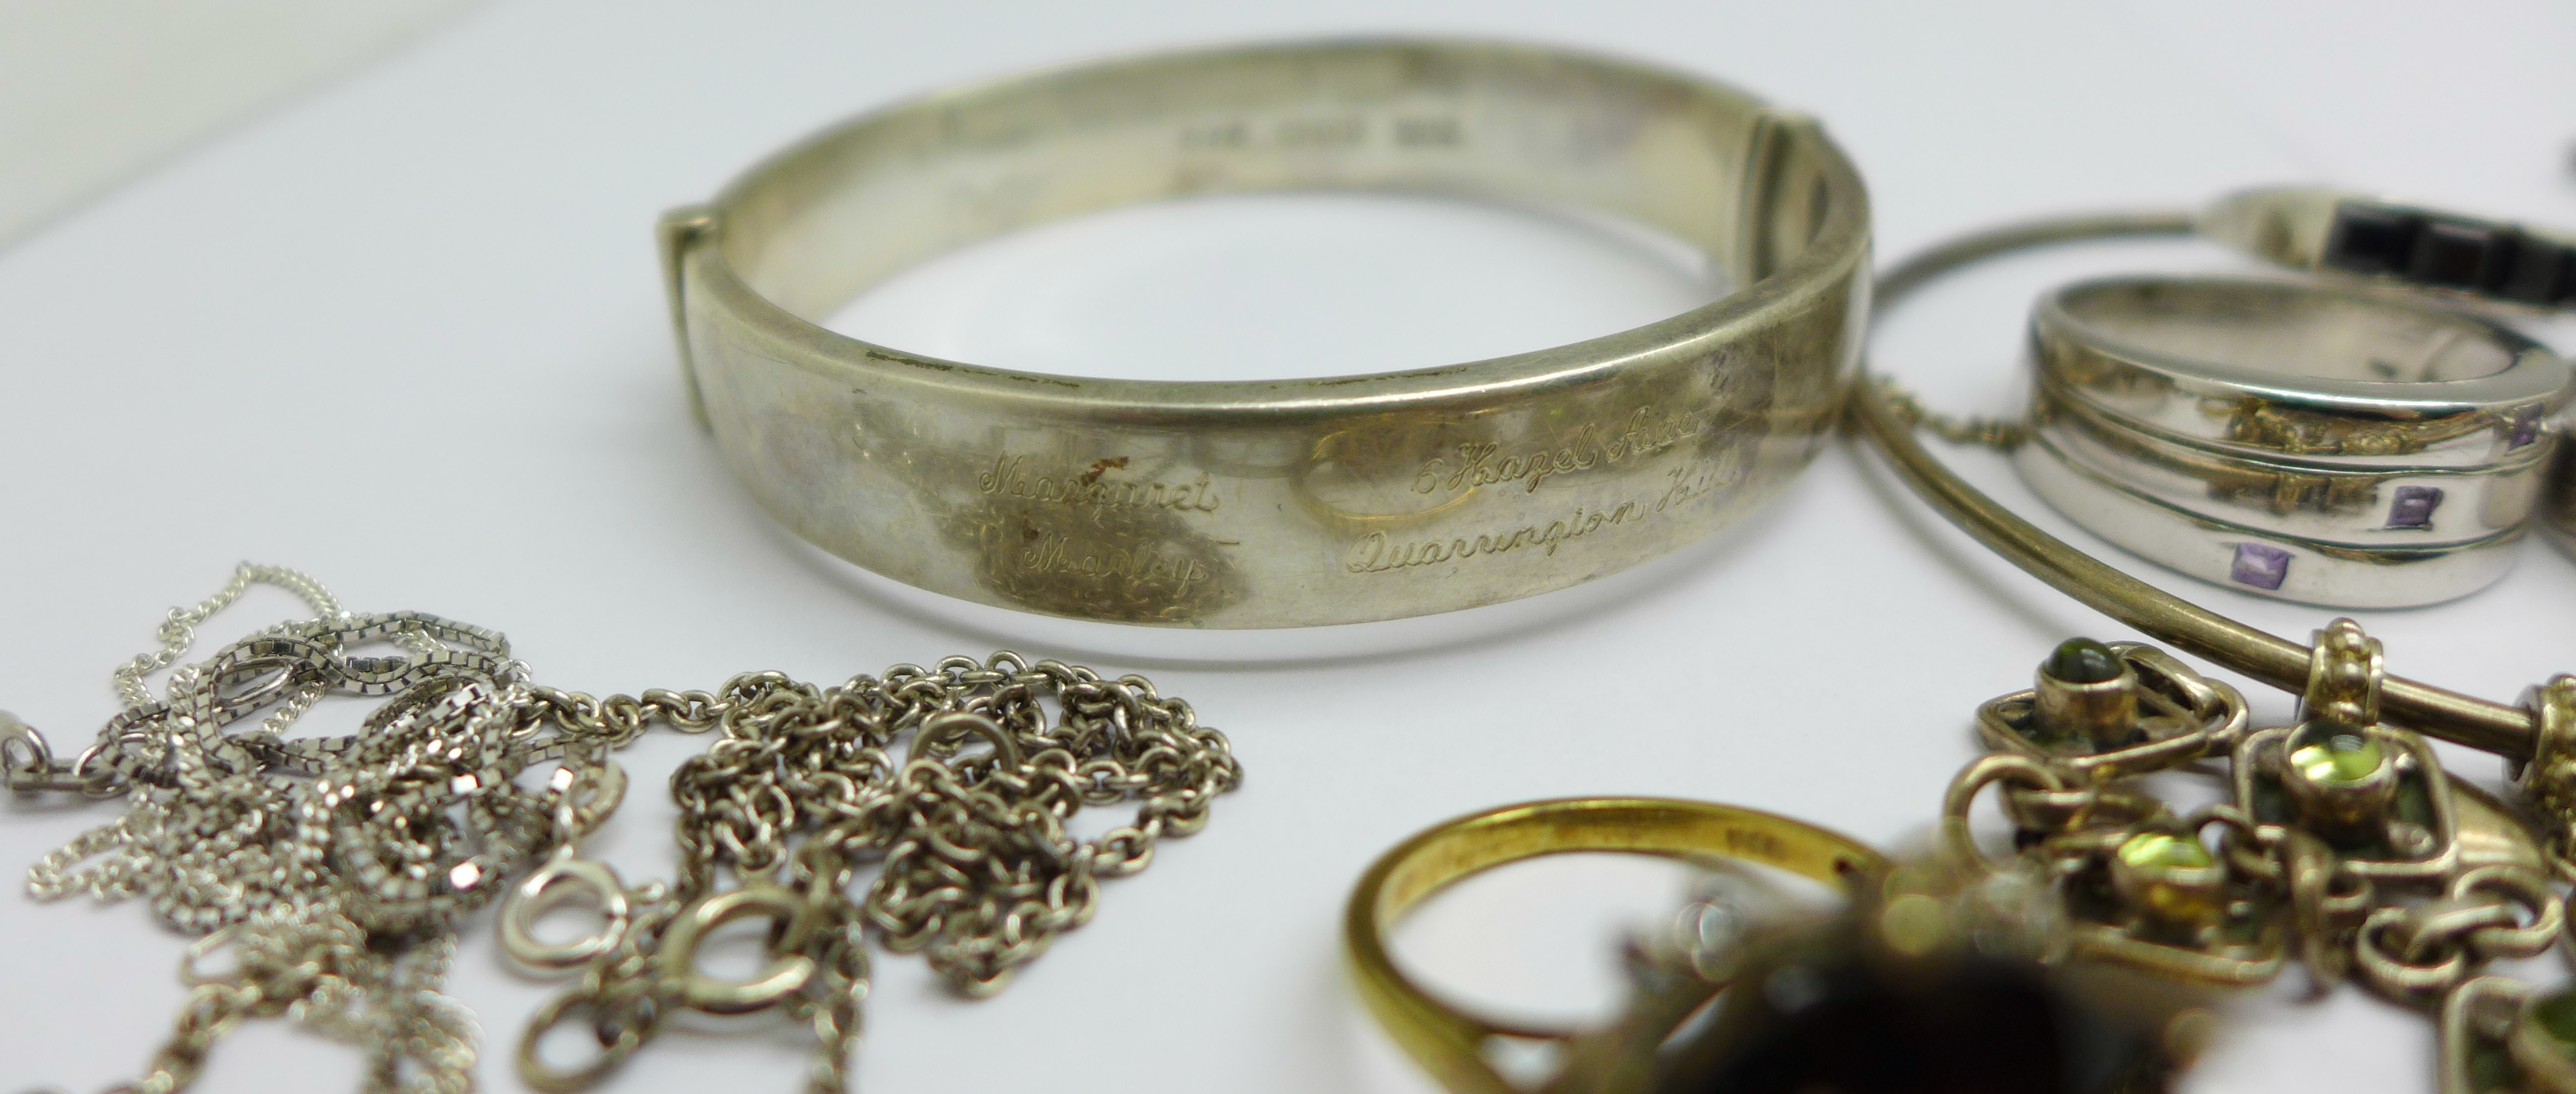 Silver jewellery including a hallmarked bangle, an elephant bracelet and a Thomas Sabo neck chain, - Image 3 of 5